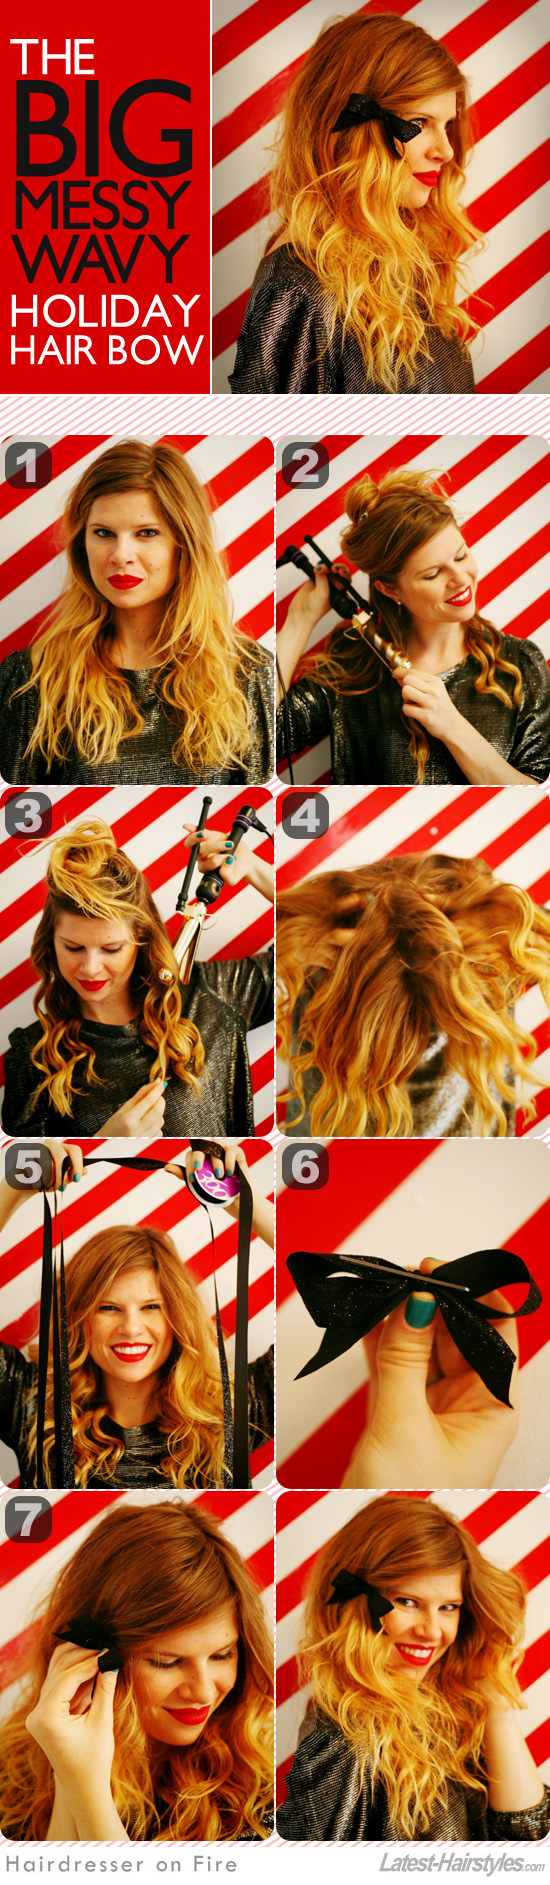 holiday hair tutorial with bow